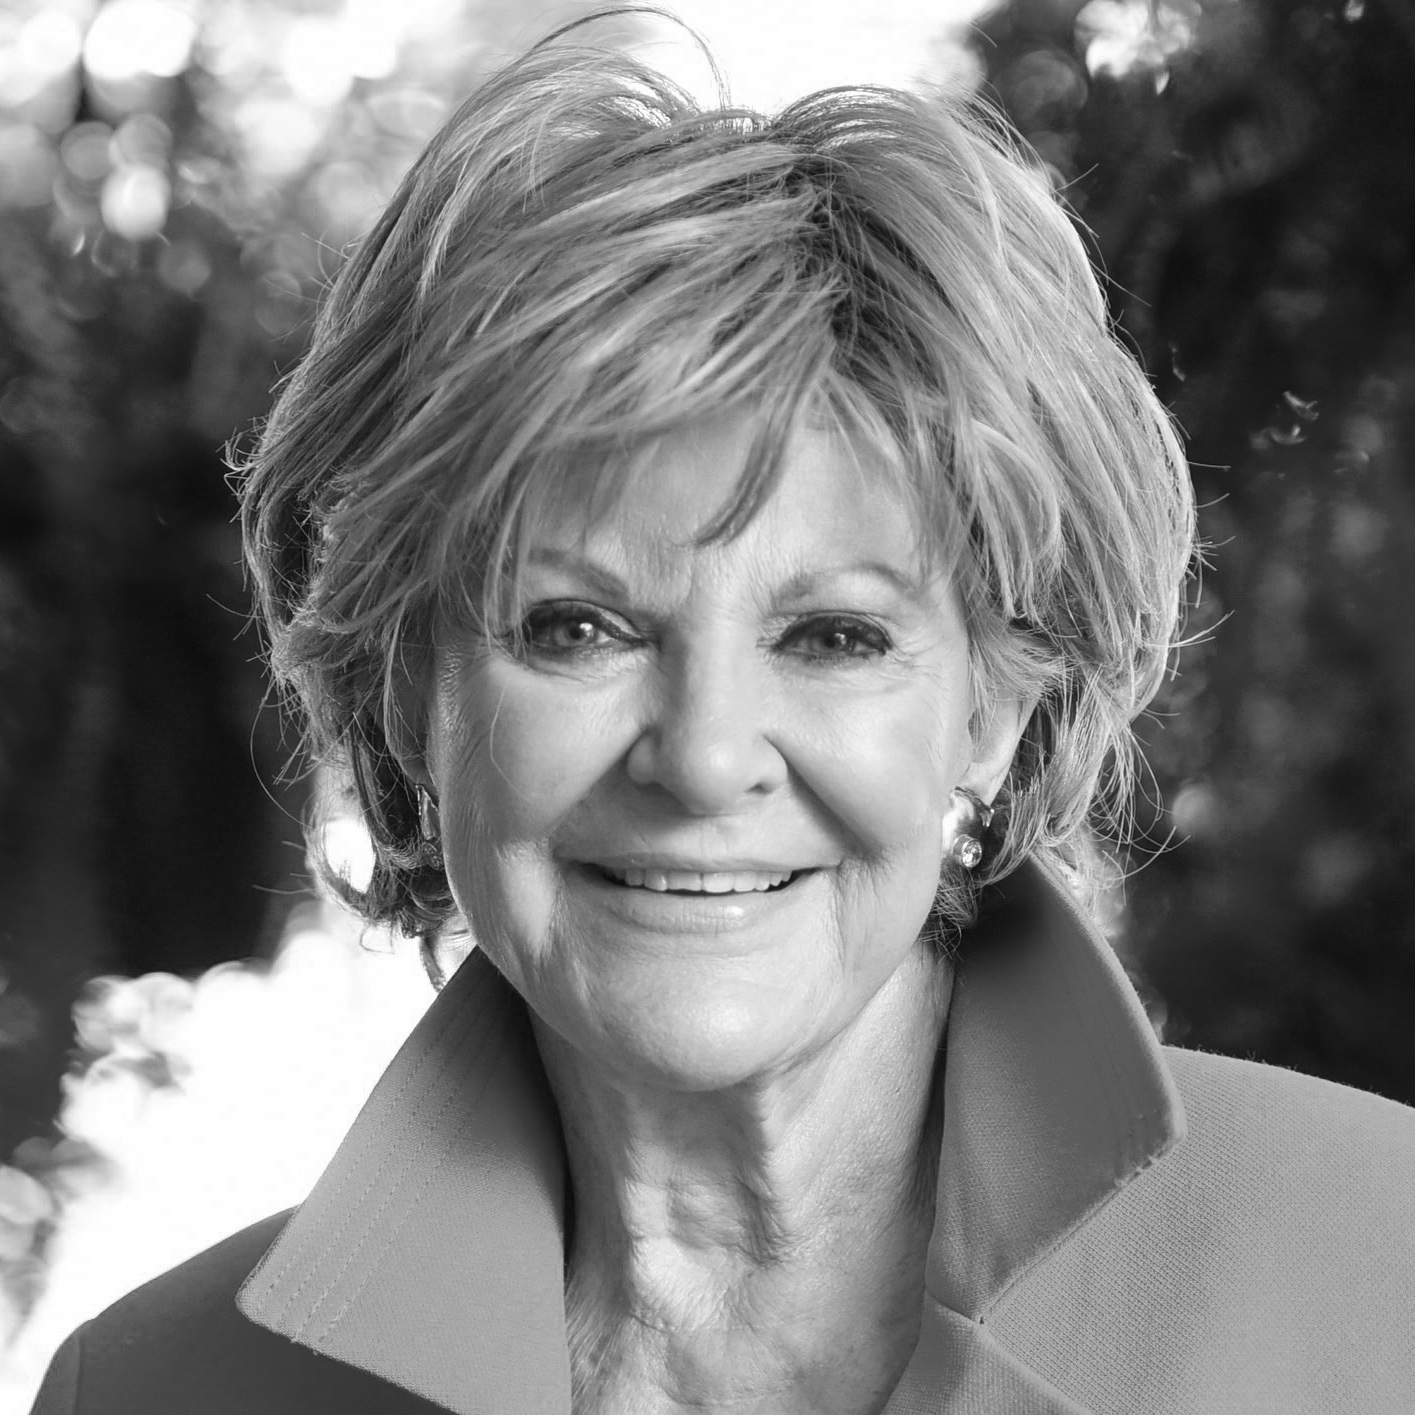 Kay Arthur is the co-founder (with her late husband, Jack) of  Precept Ministries International  and the teacher and host of   Precepts for Life  , a daily television, radio, and online program which takes the student through the Bible book-by-book, verse-by-verse, using the inductive Bible study method.  Precepts for Life  TV and radio reaches more than 75 million households each day and more than 30 countries, while the online program is available to almost everyone on the planet.